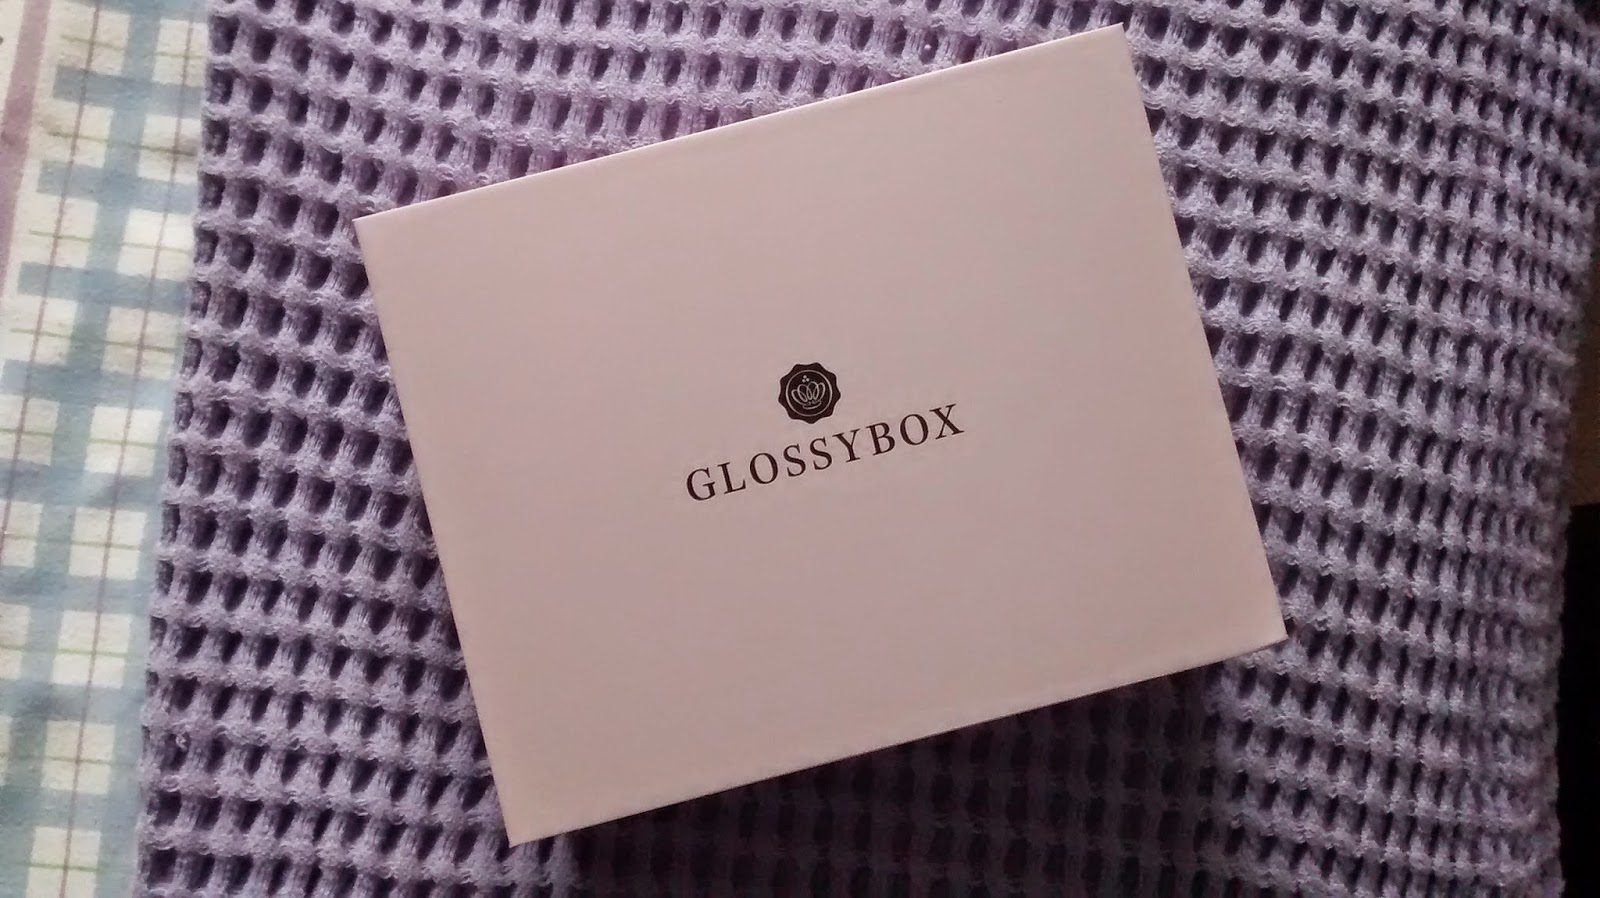 August Glossybox